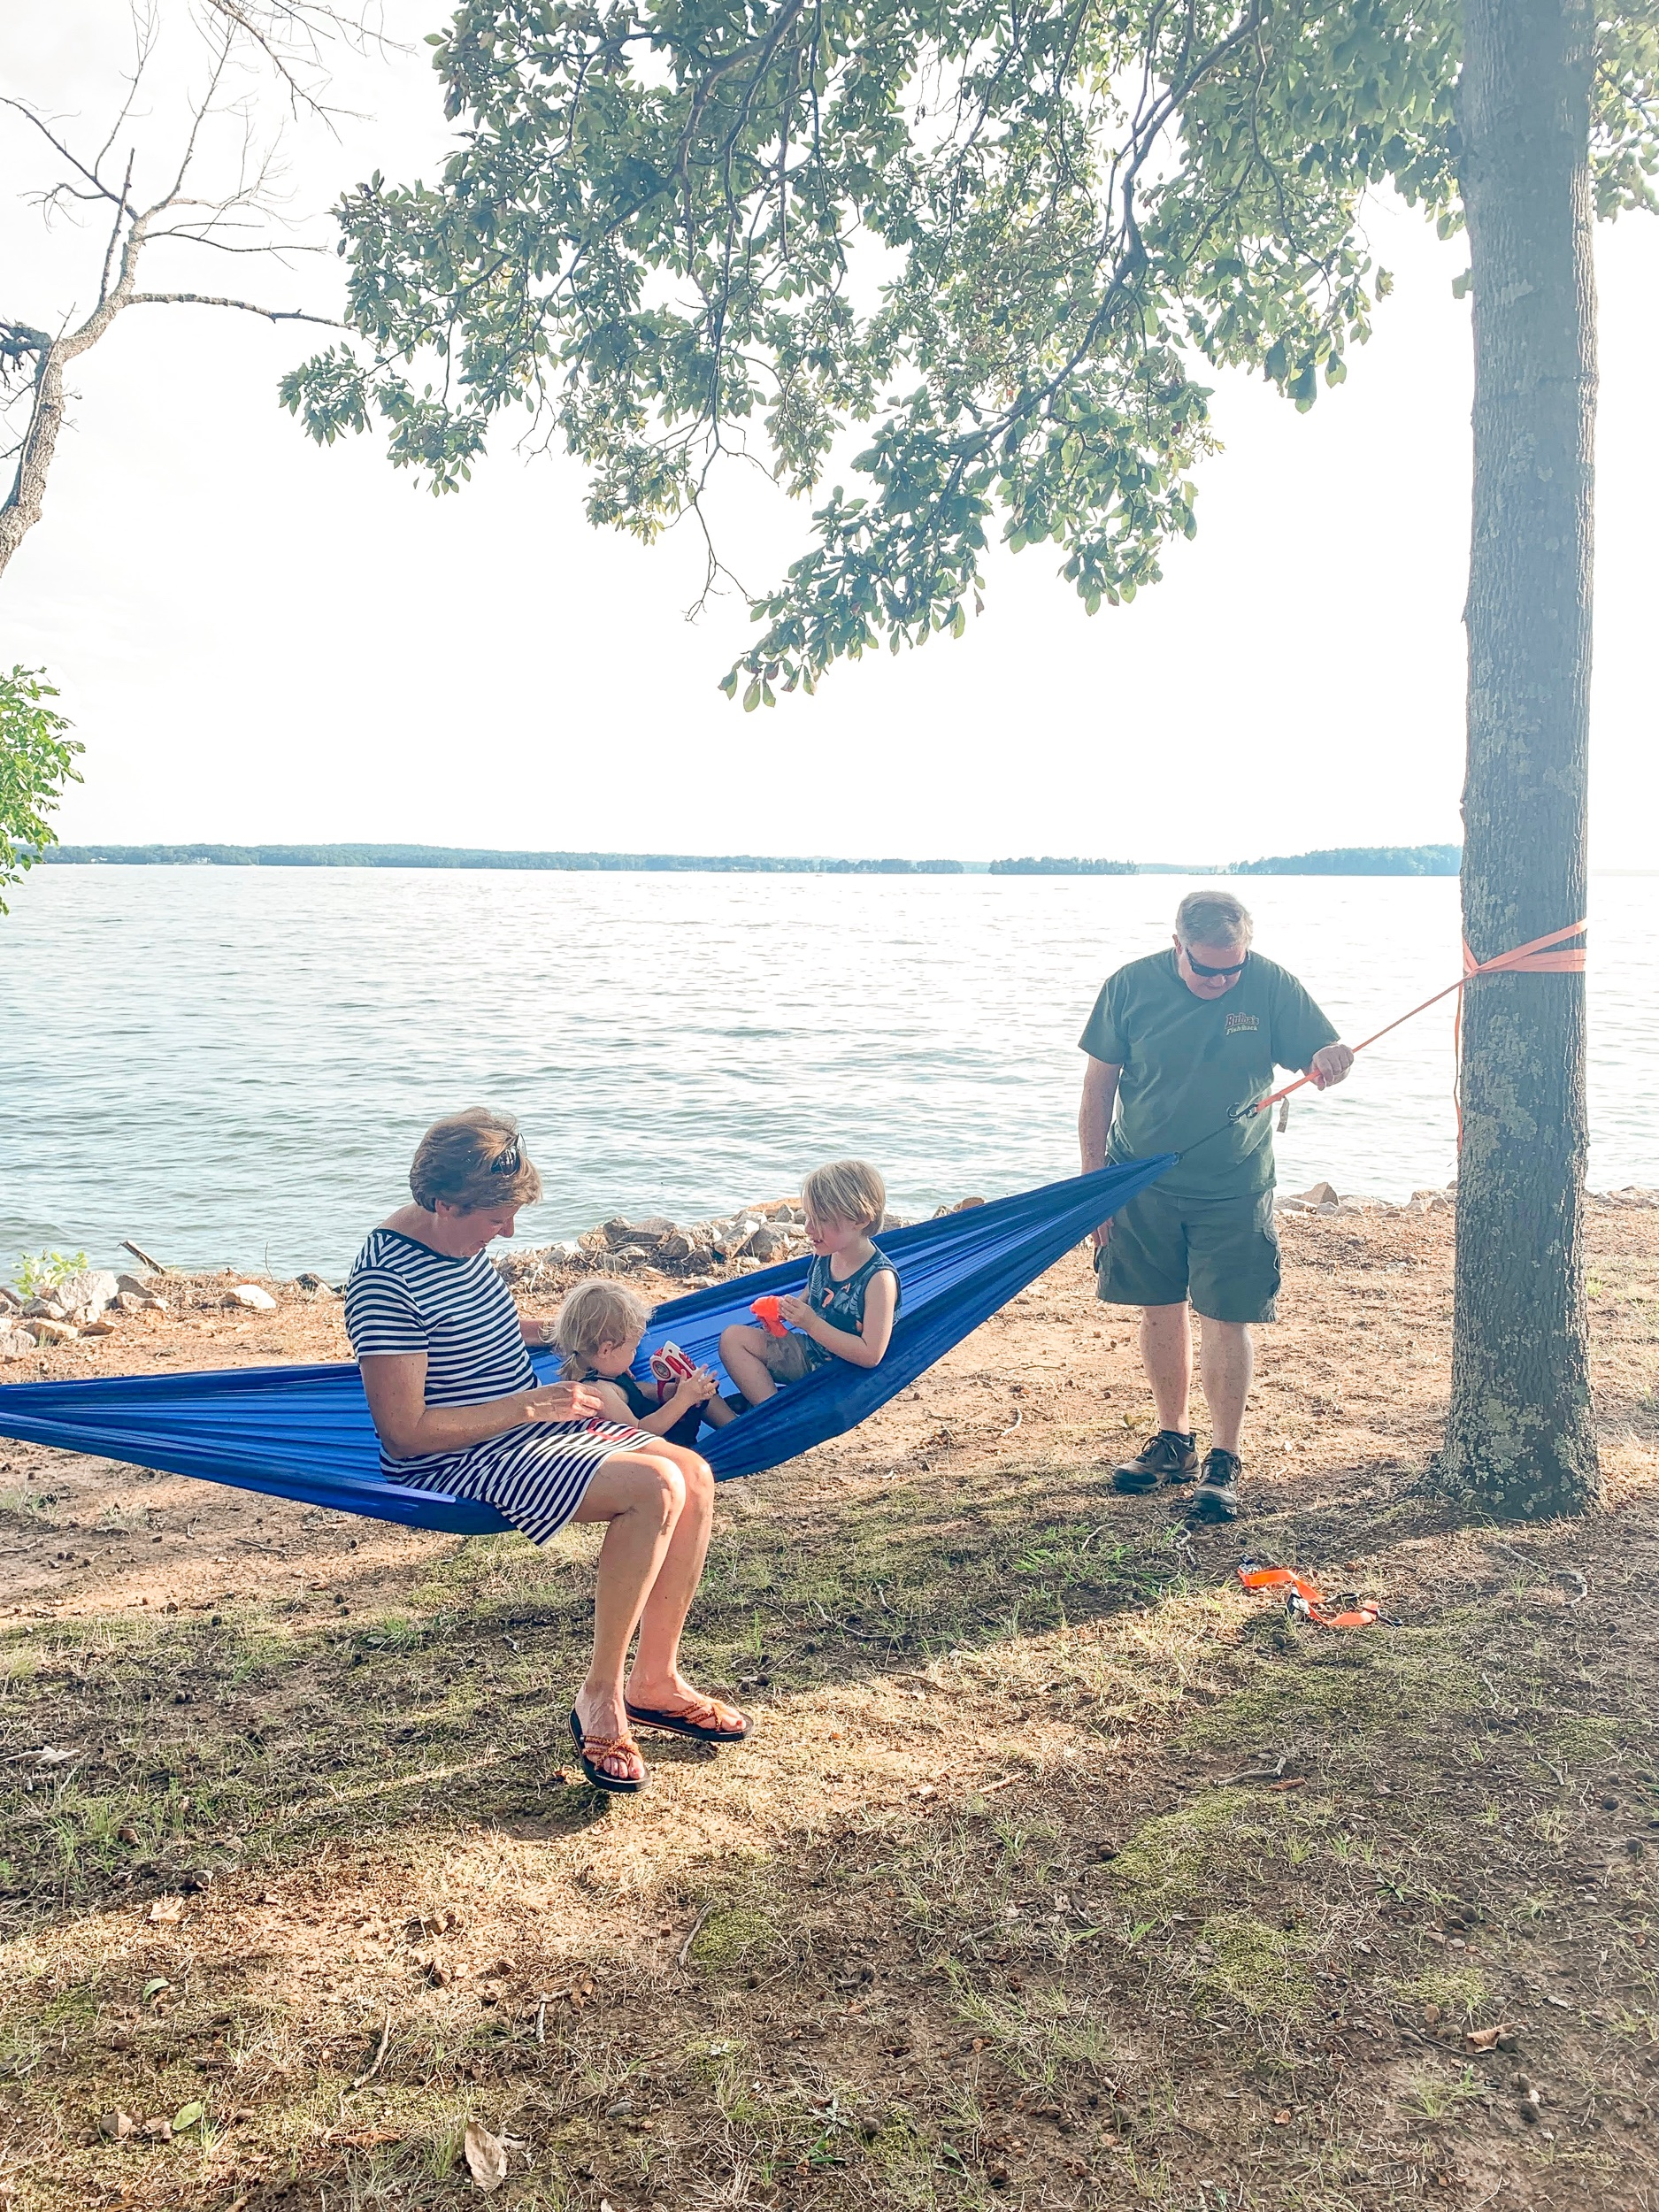 Having a water gun fight with the grandparents is a fun summer activity to do! We love visiting Lake Murray.